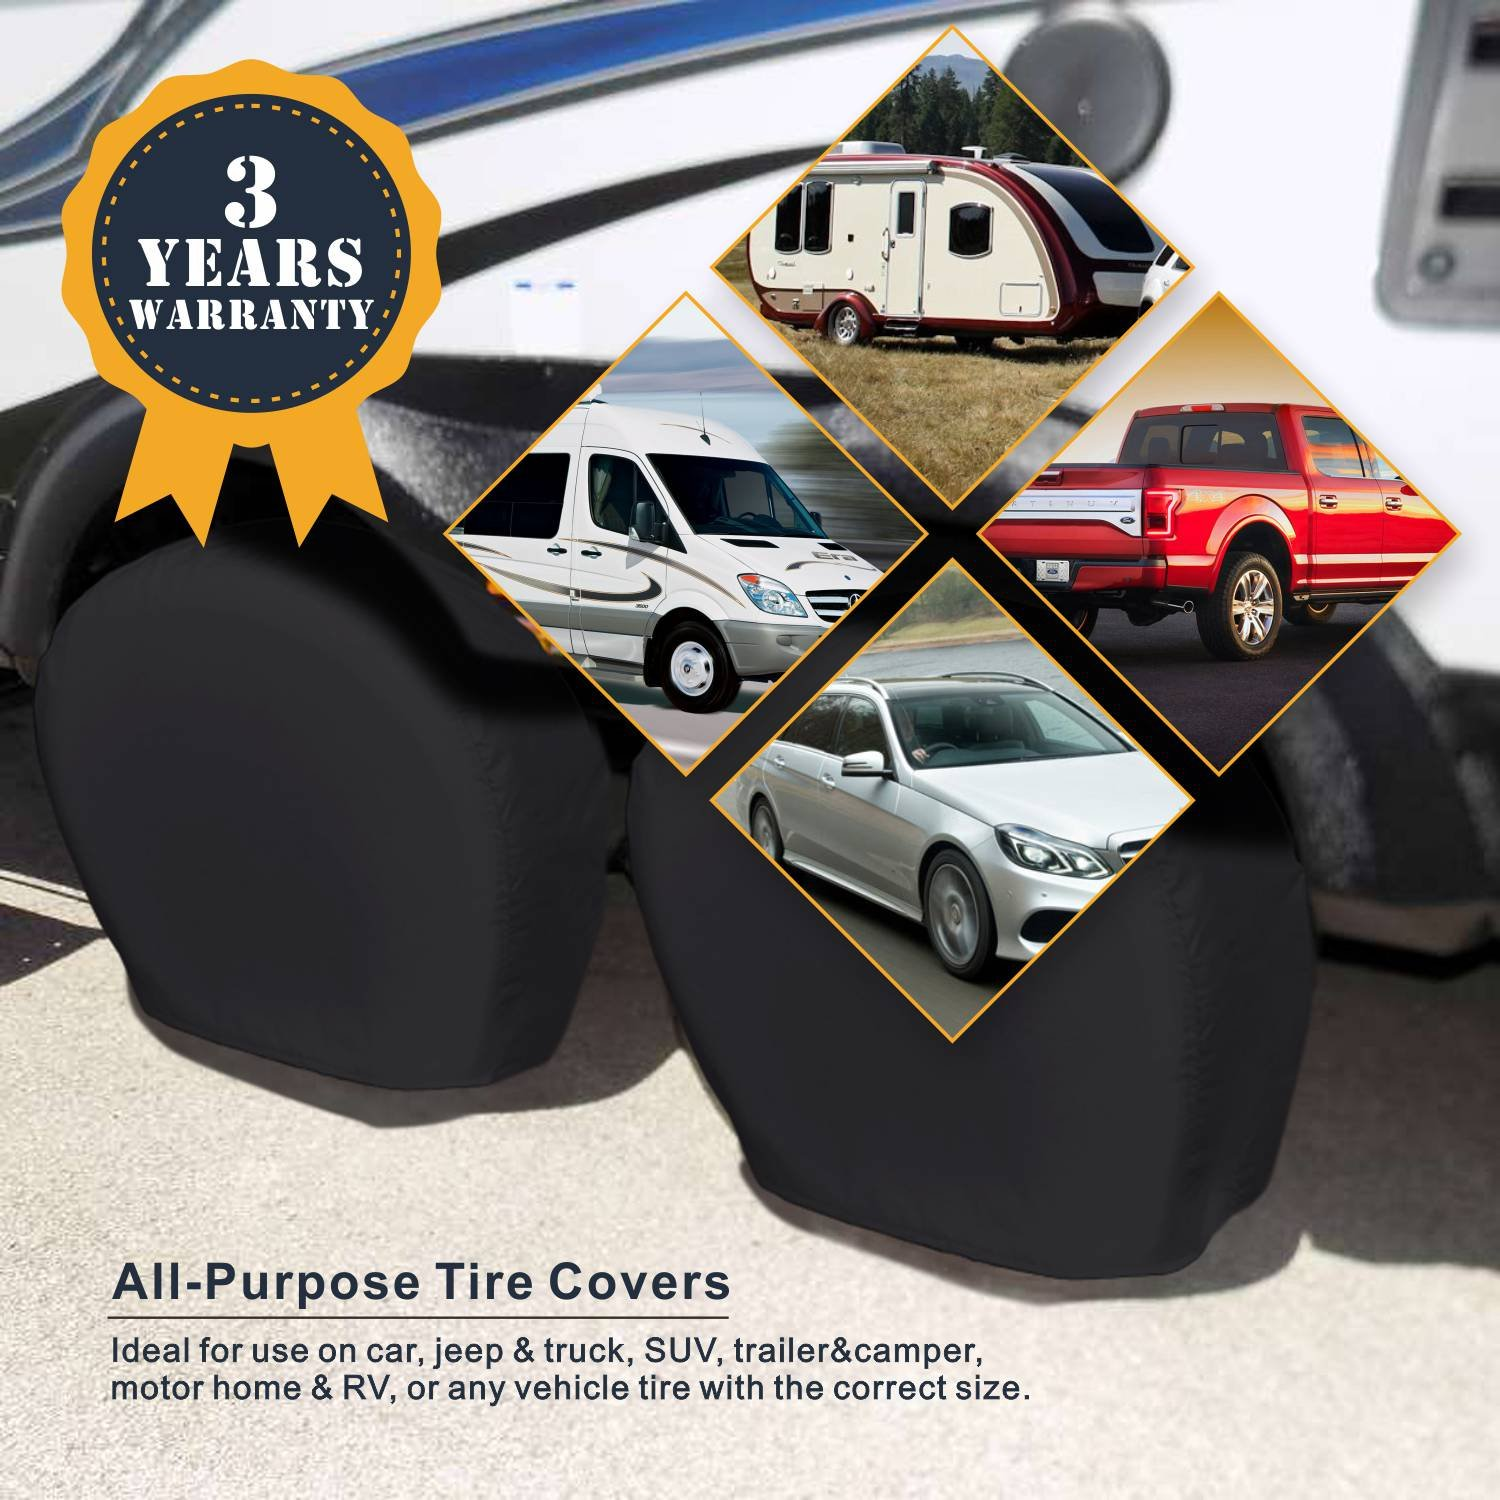 Explore Land Tire Cover 2 Pack For RV motorhome camper travel trailer truck Jeep SUV Tough Vinyl Wheel Protector Universal Fits Tire Diameters 29-31.75 inch Black